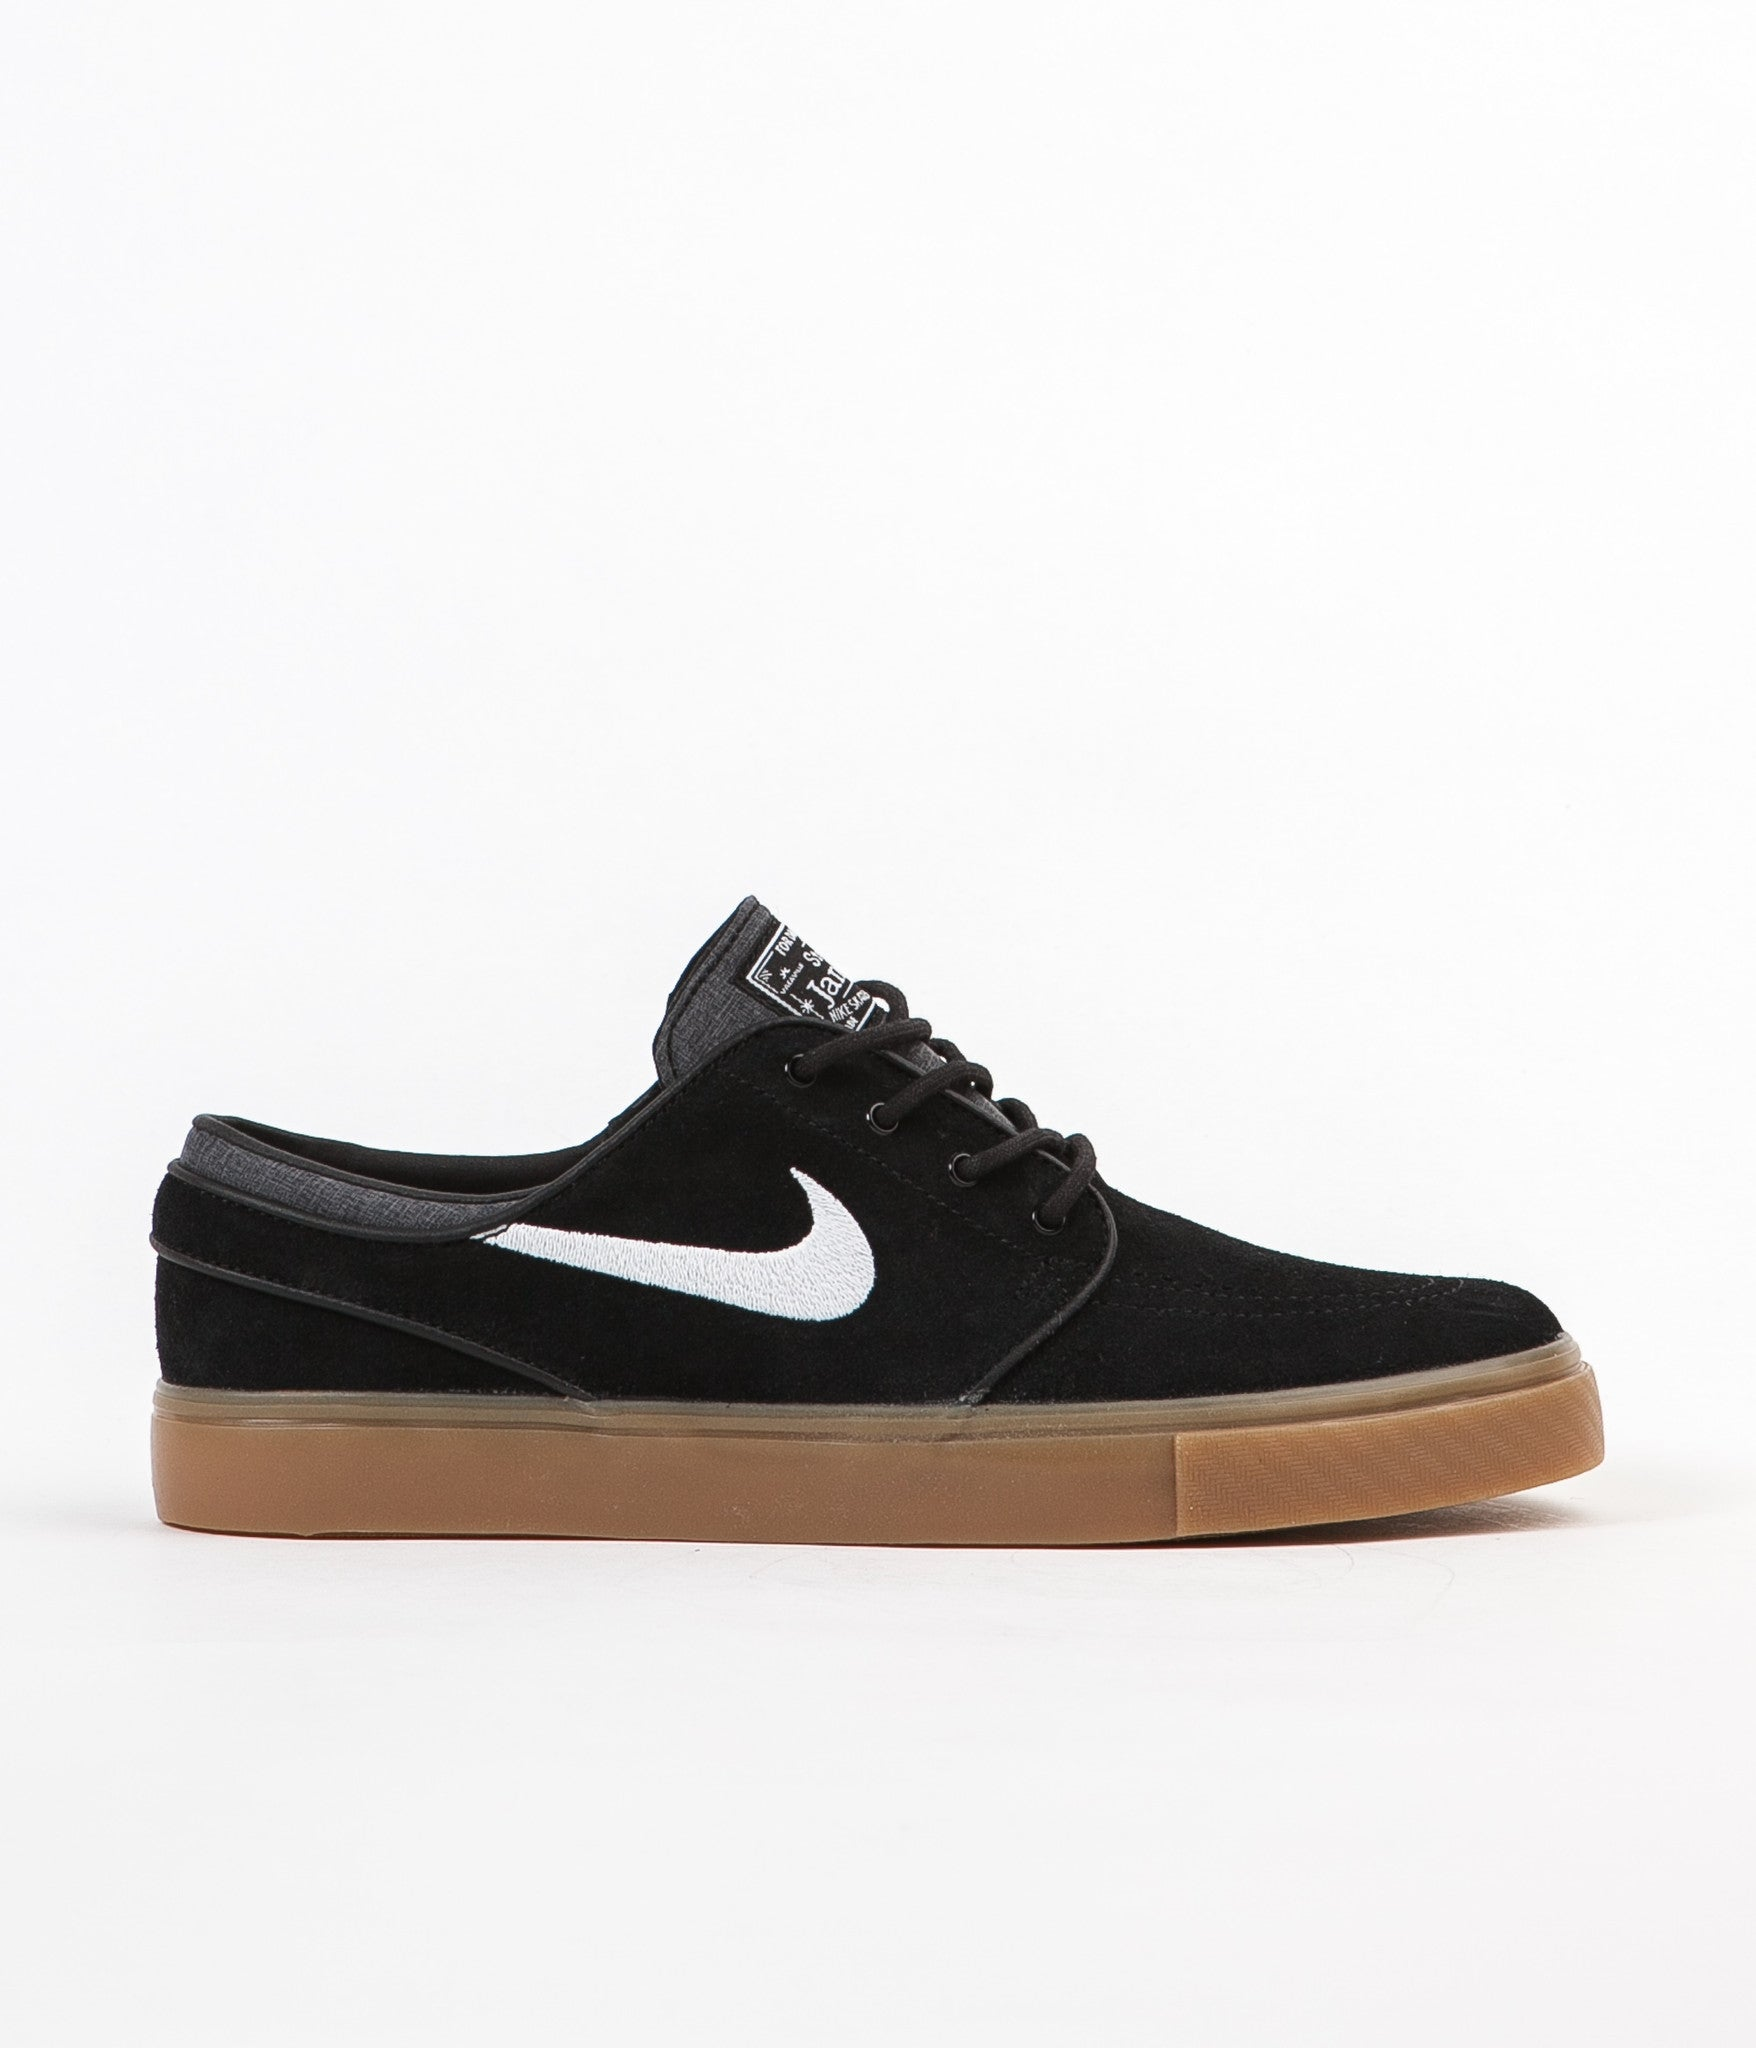 Nike SB Stefan Janoski Shoes - Black / White - Gum Light Brown